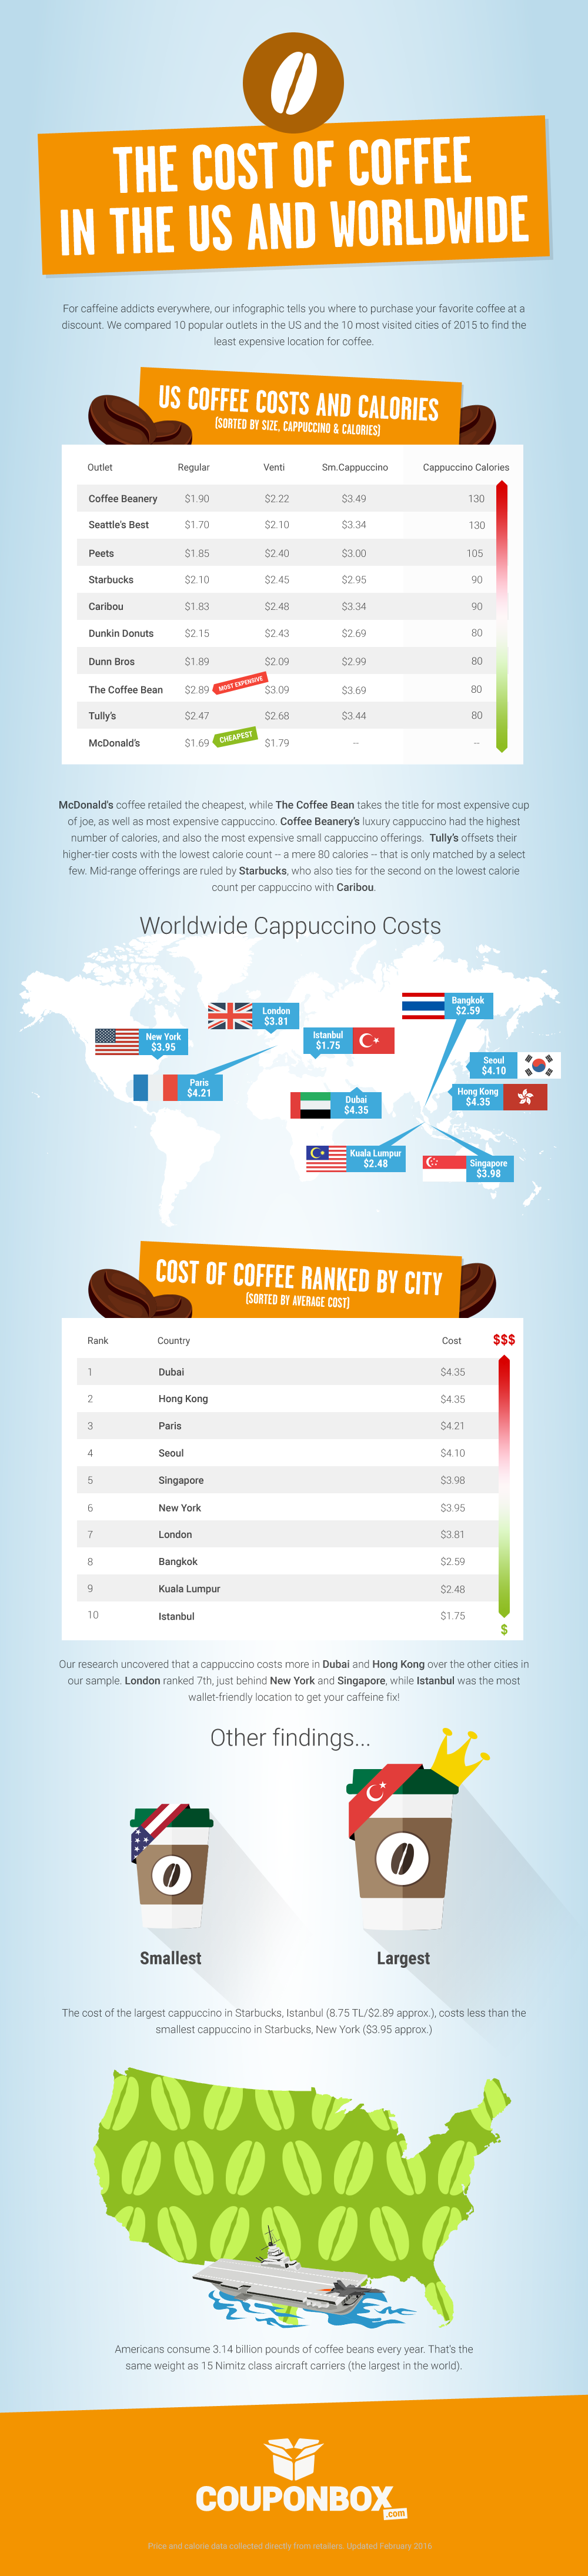 The Cost of Coffee in the US and Worldwide